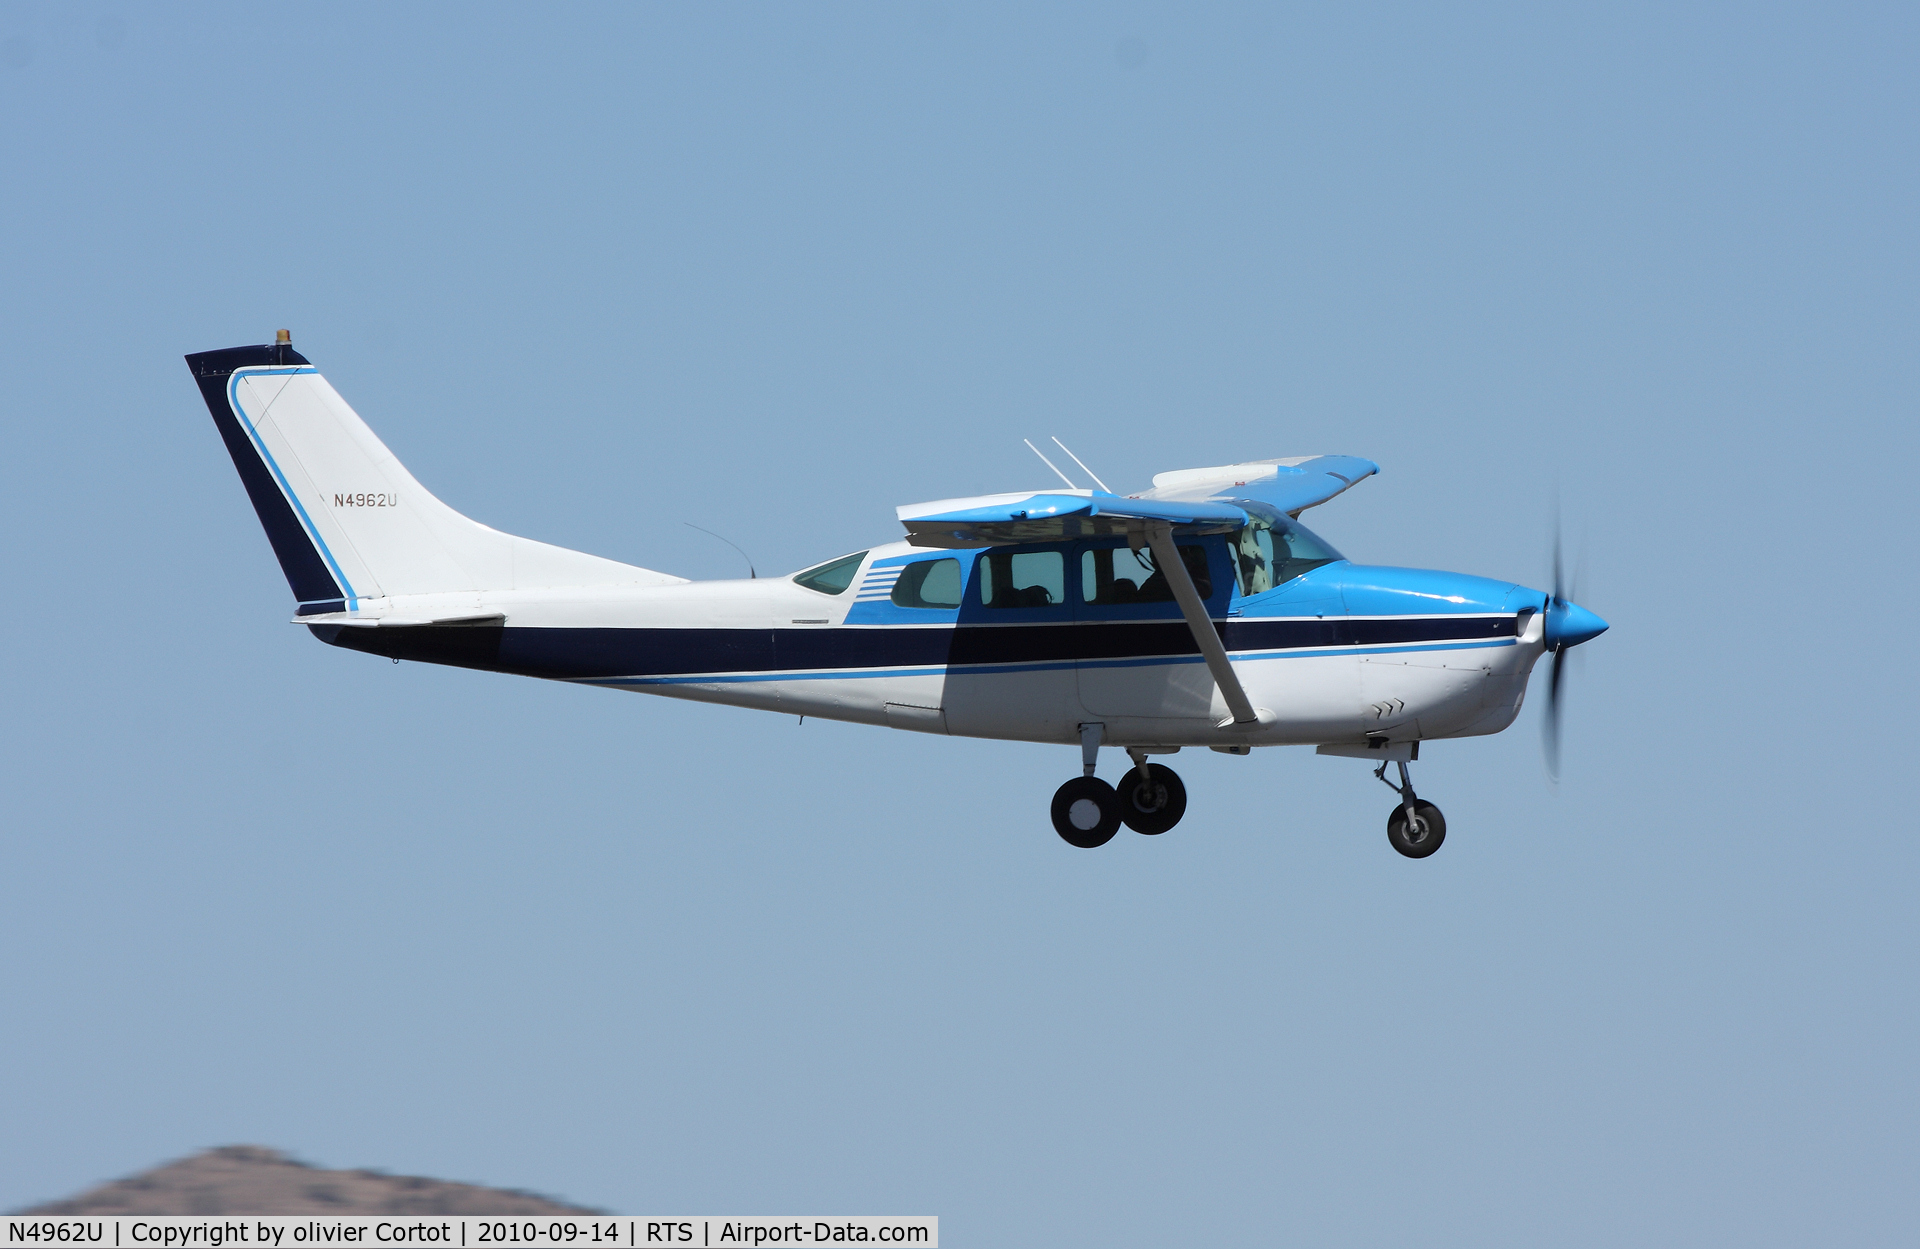 N4962U, 1965 Cessna 210E Centurion C/N 21058662, landing at Stead airport during the Reno air races